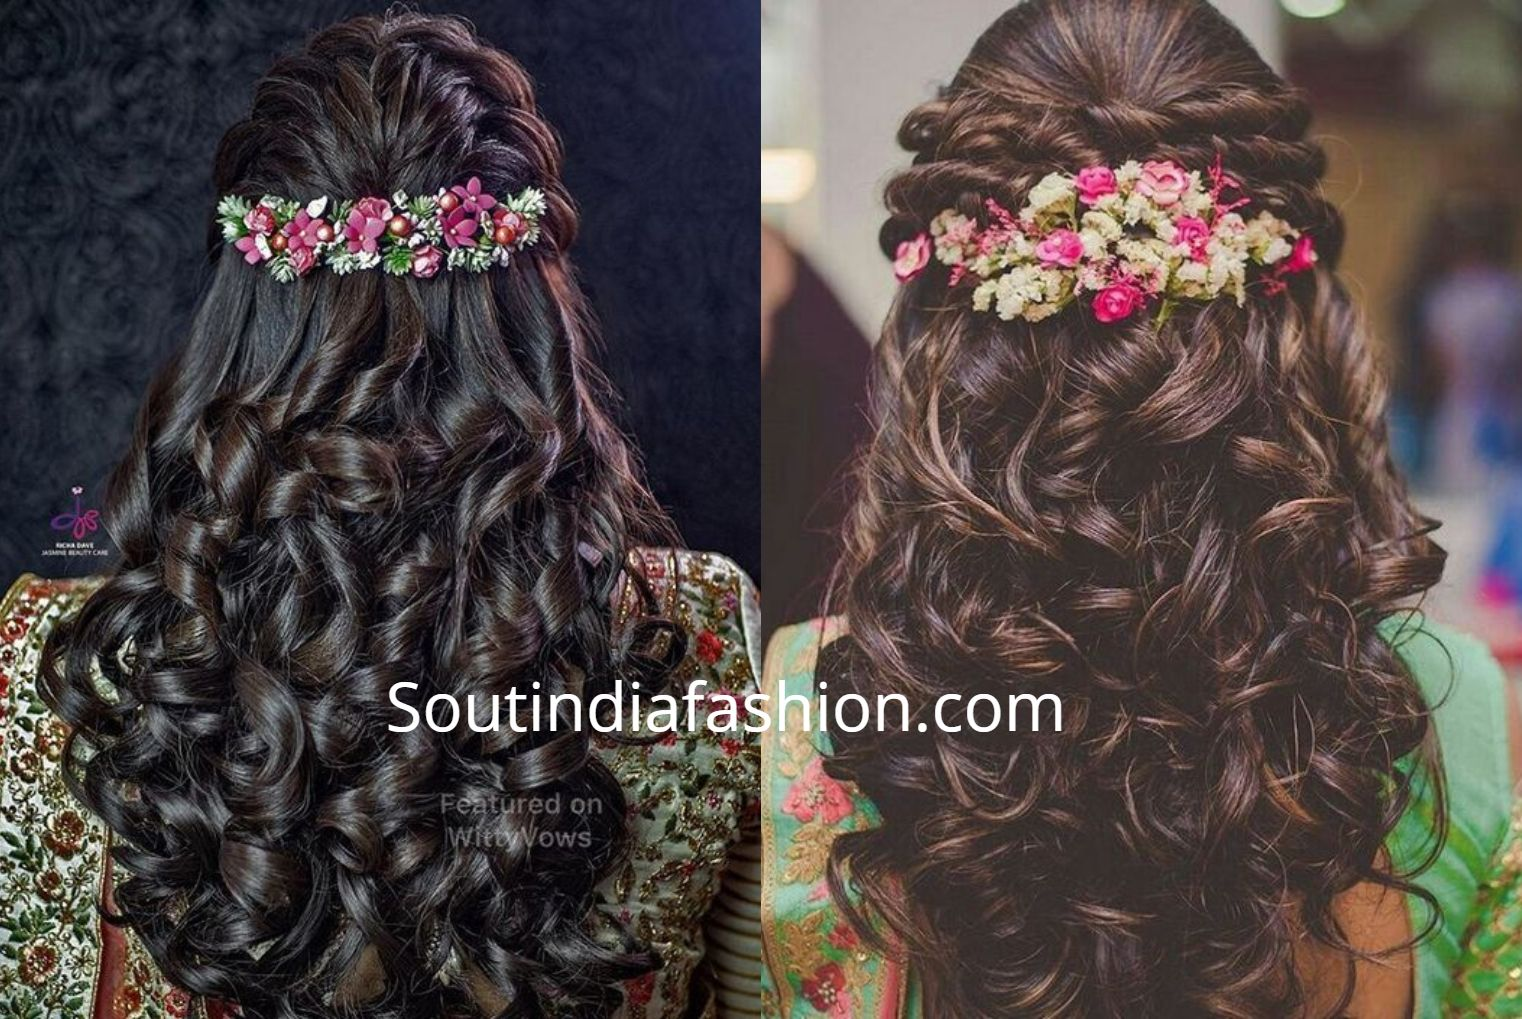 Top 10 South Indian Bridal Hairstyles For Weddings Engagement Etc Wedding Reception Hairstyles Indian Bridal Hairstyles Wedding Hairstyles For Long Hair